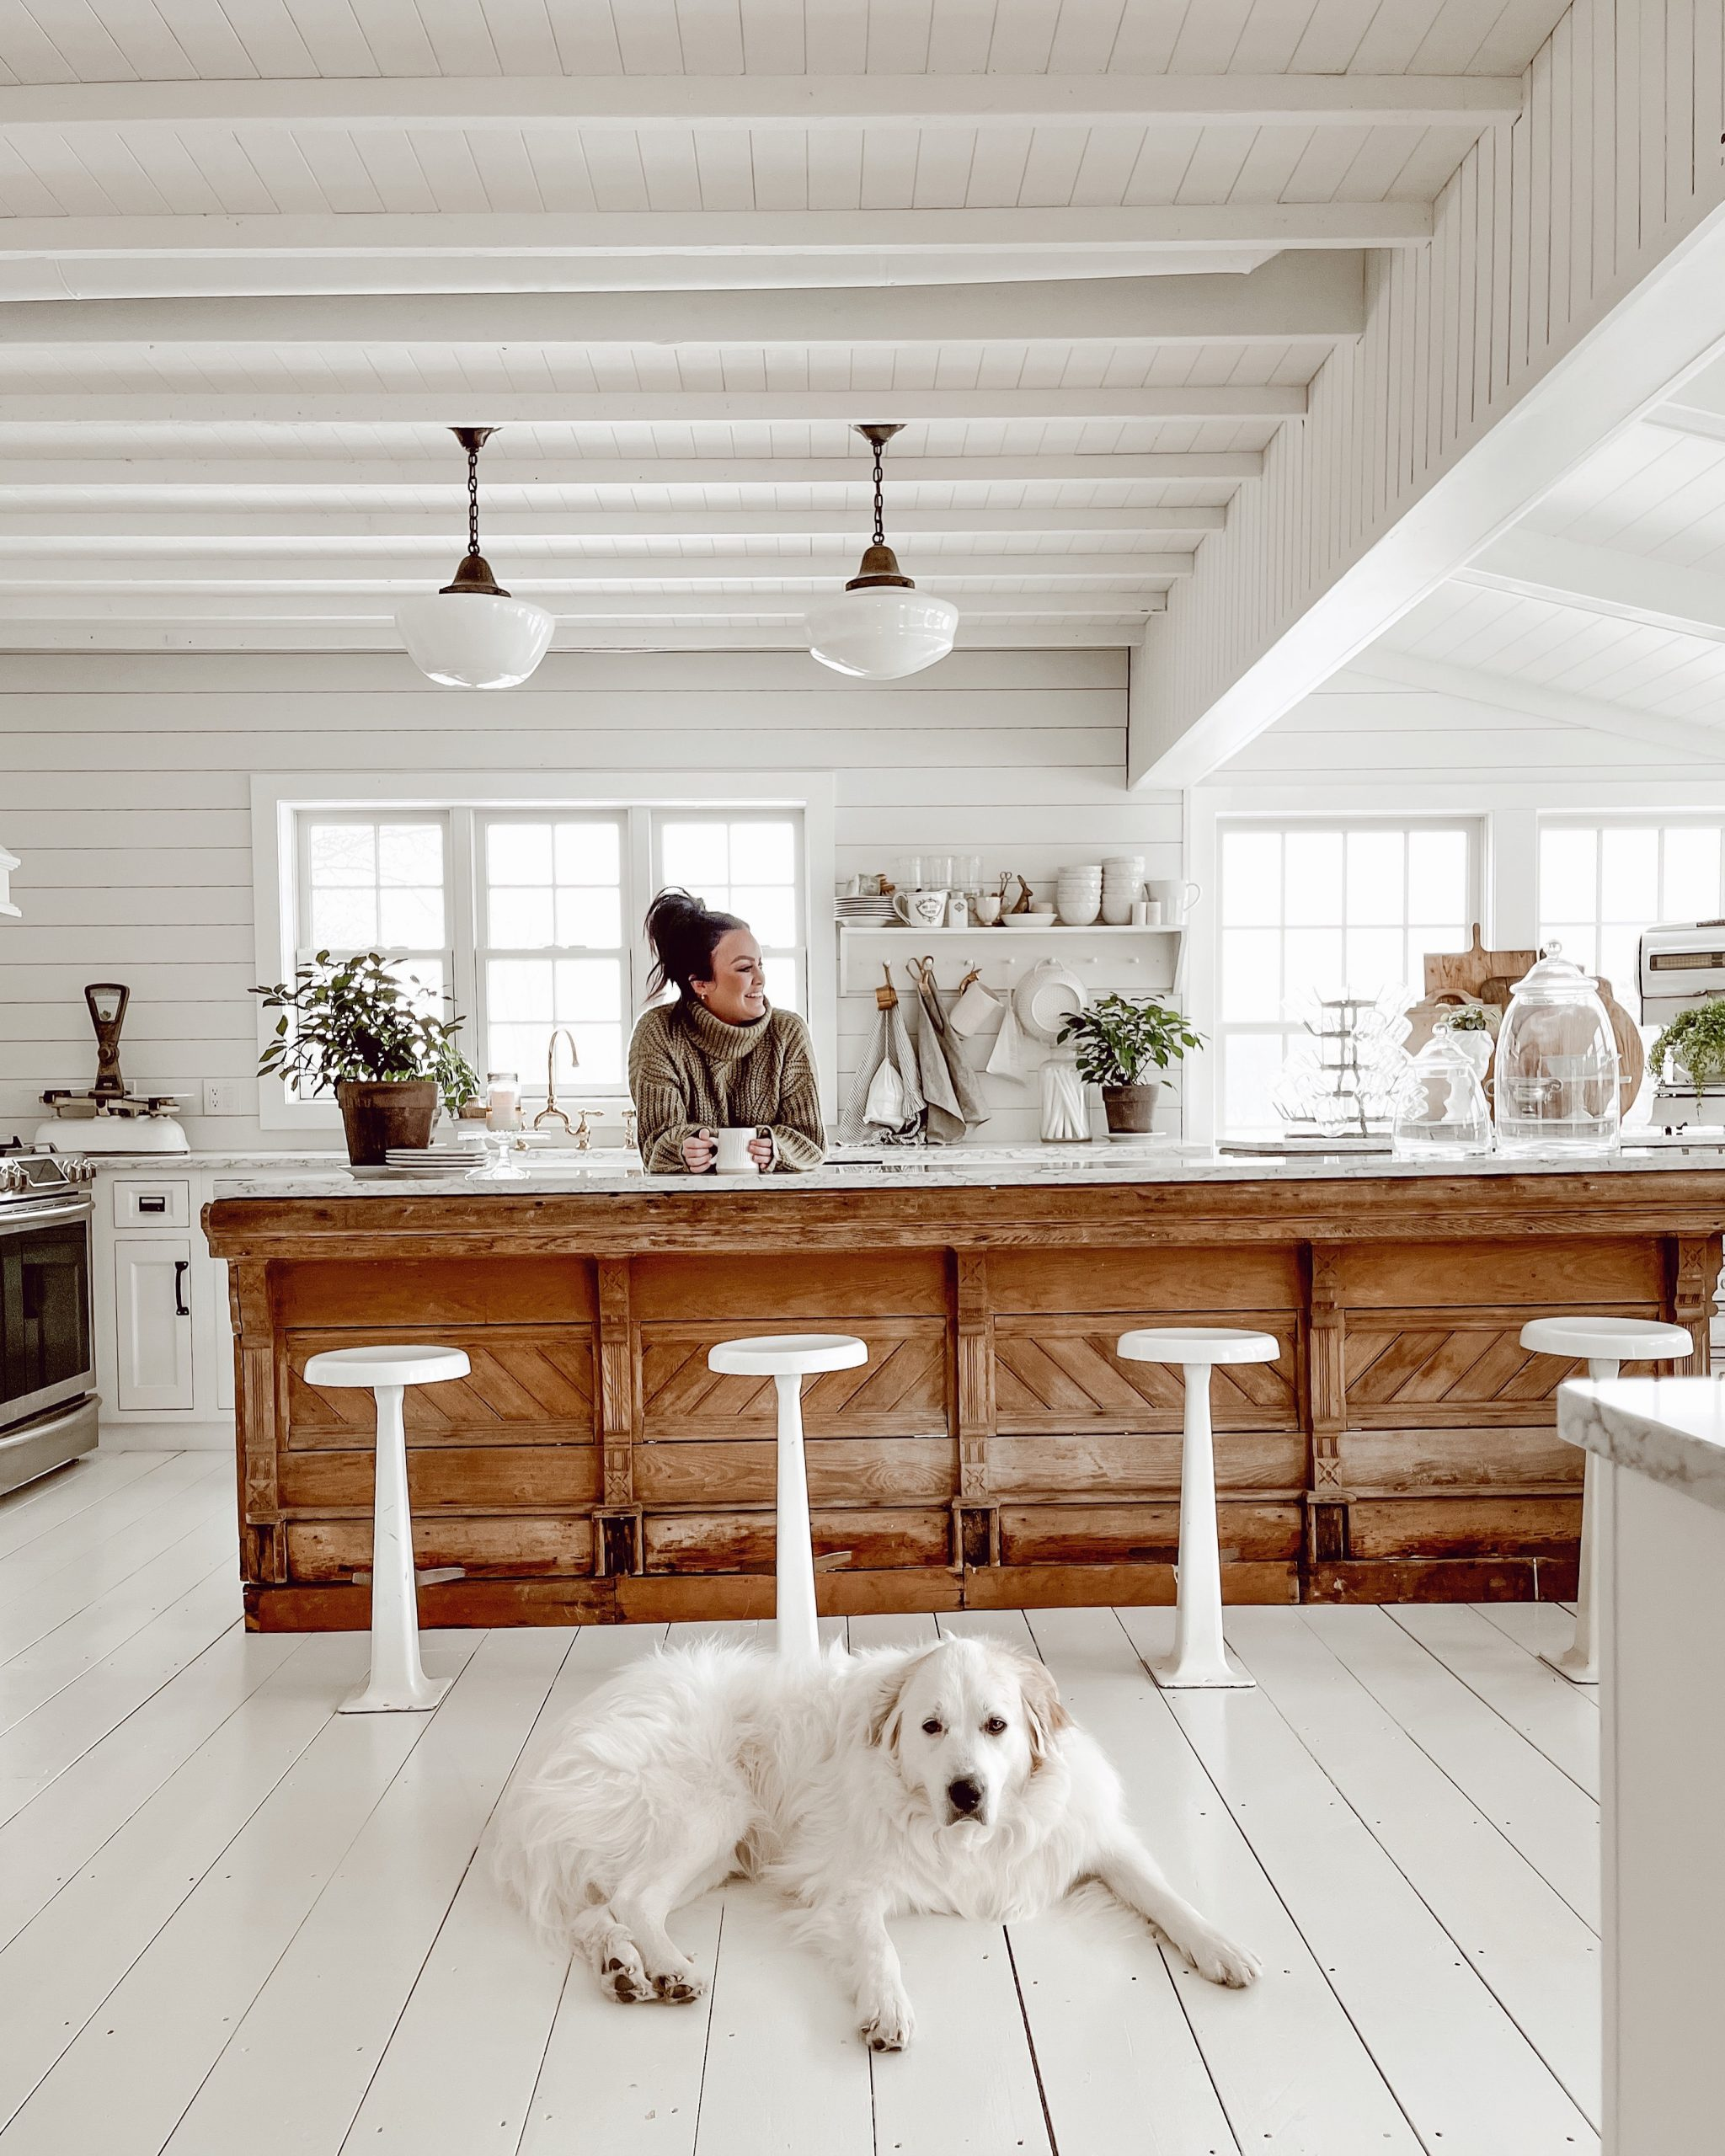 Favorite Things Friday: Our New Kitchen Island, Swim Lessons, and more!